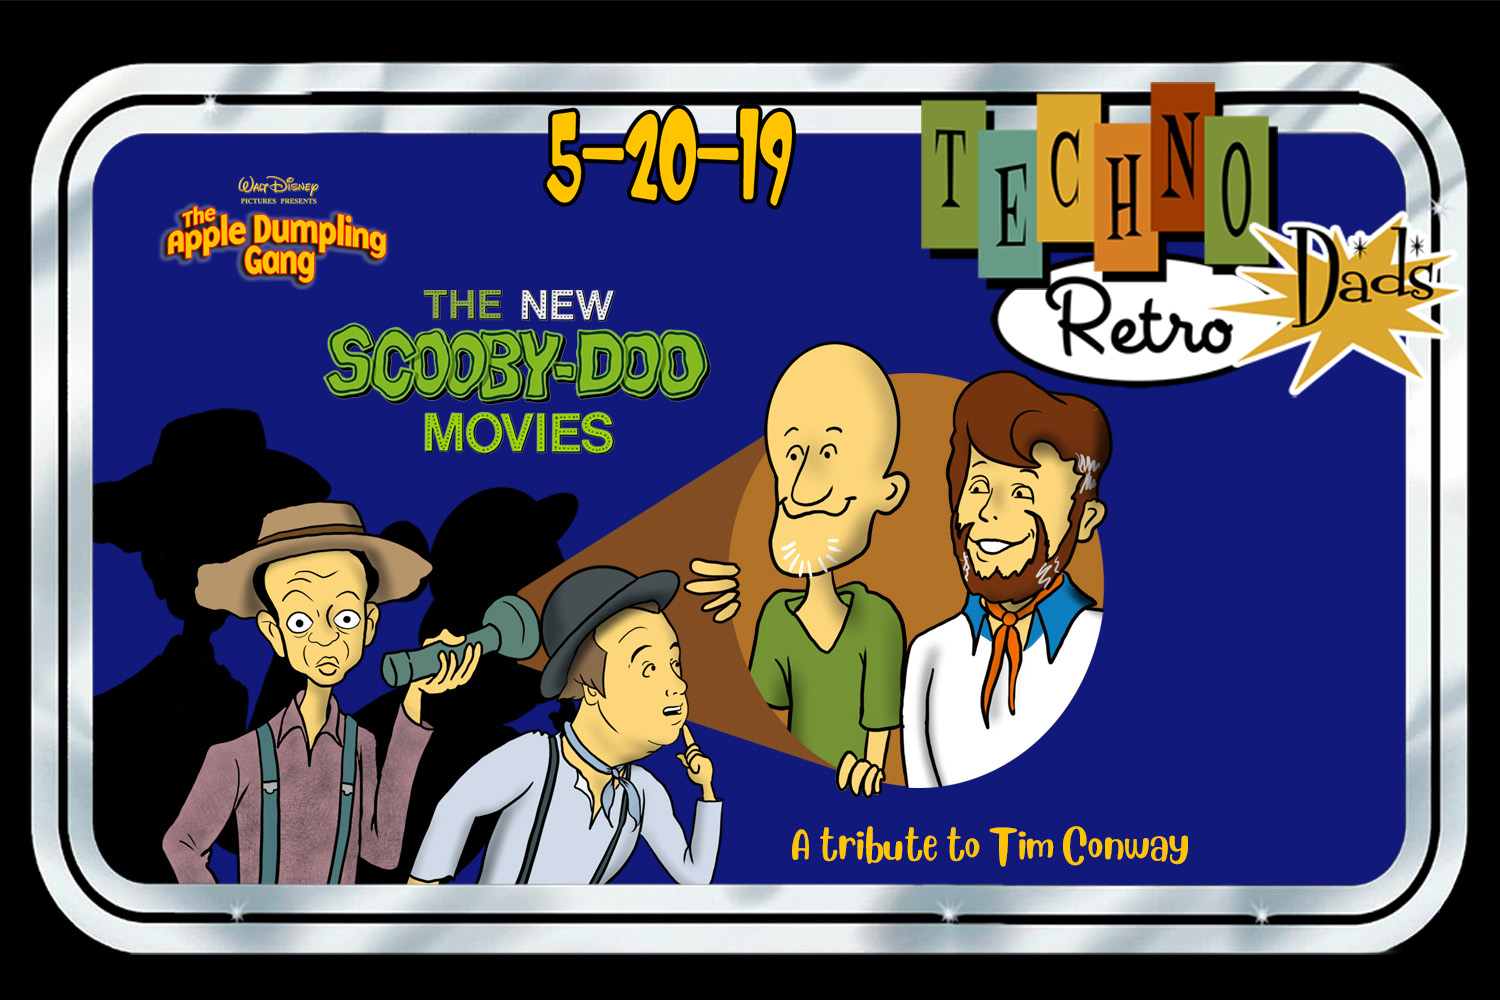 TechnoRetro Dads: Controversy, Conspiracy, and Tim Conway